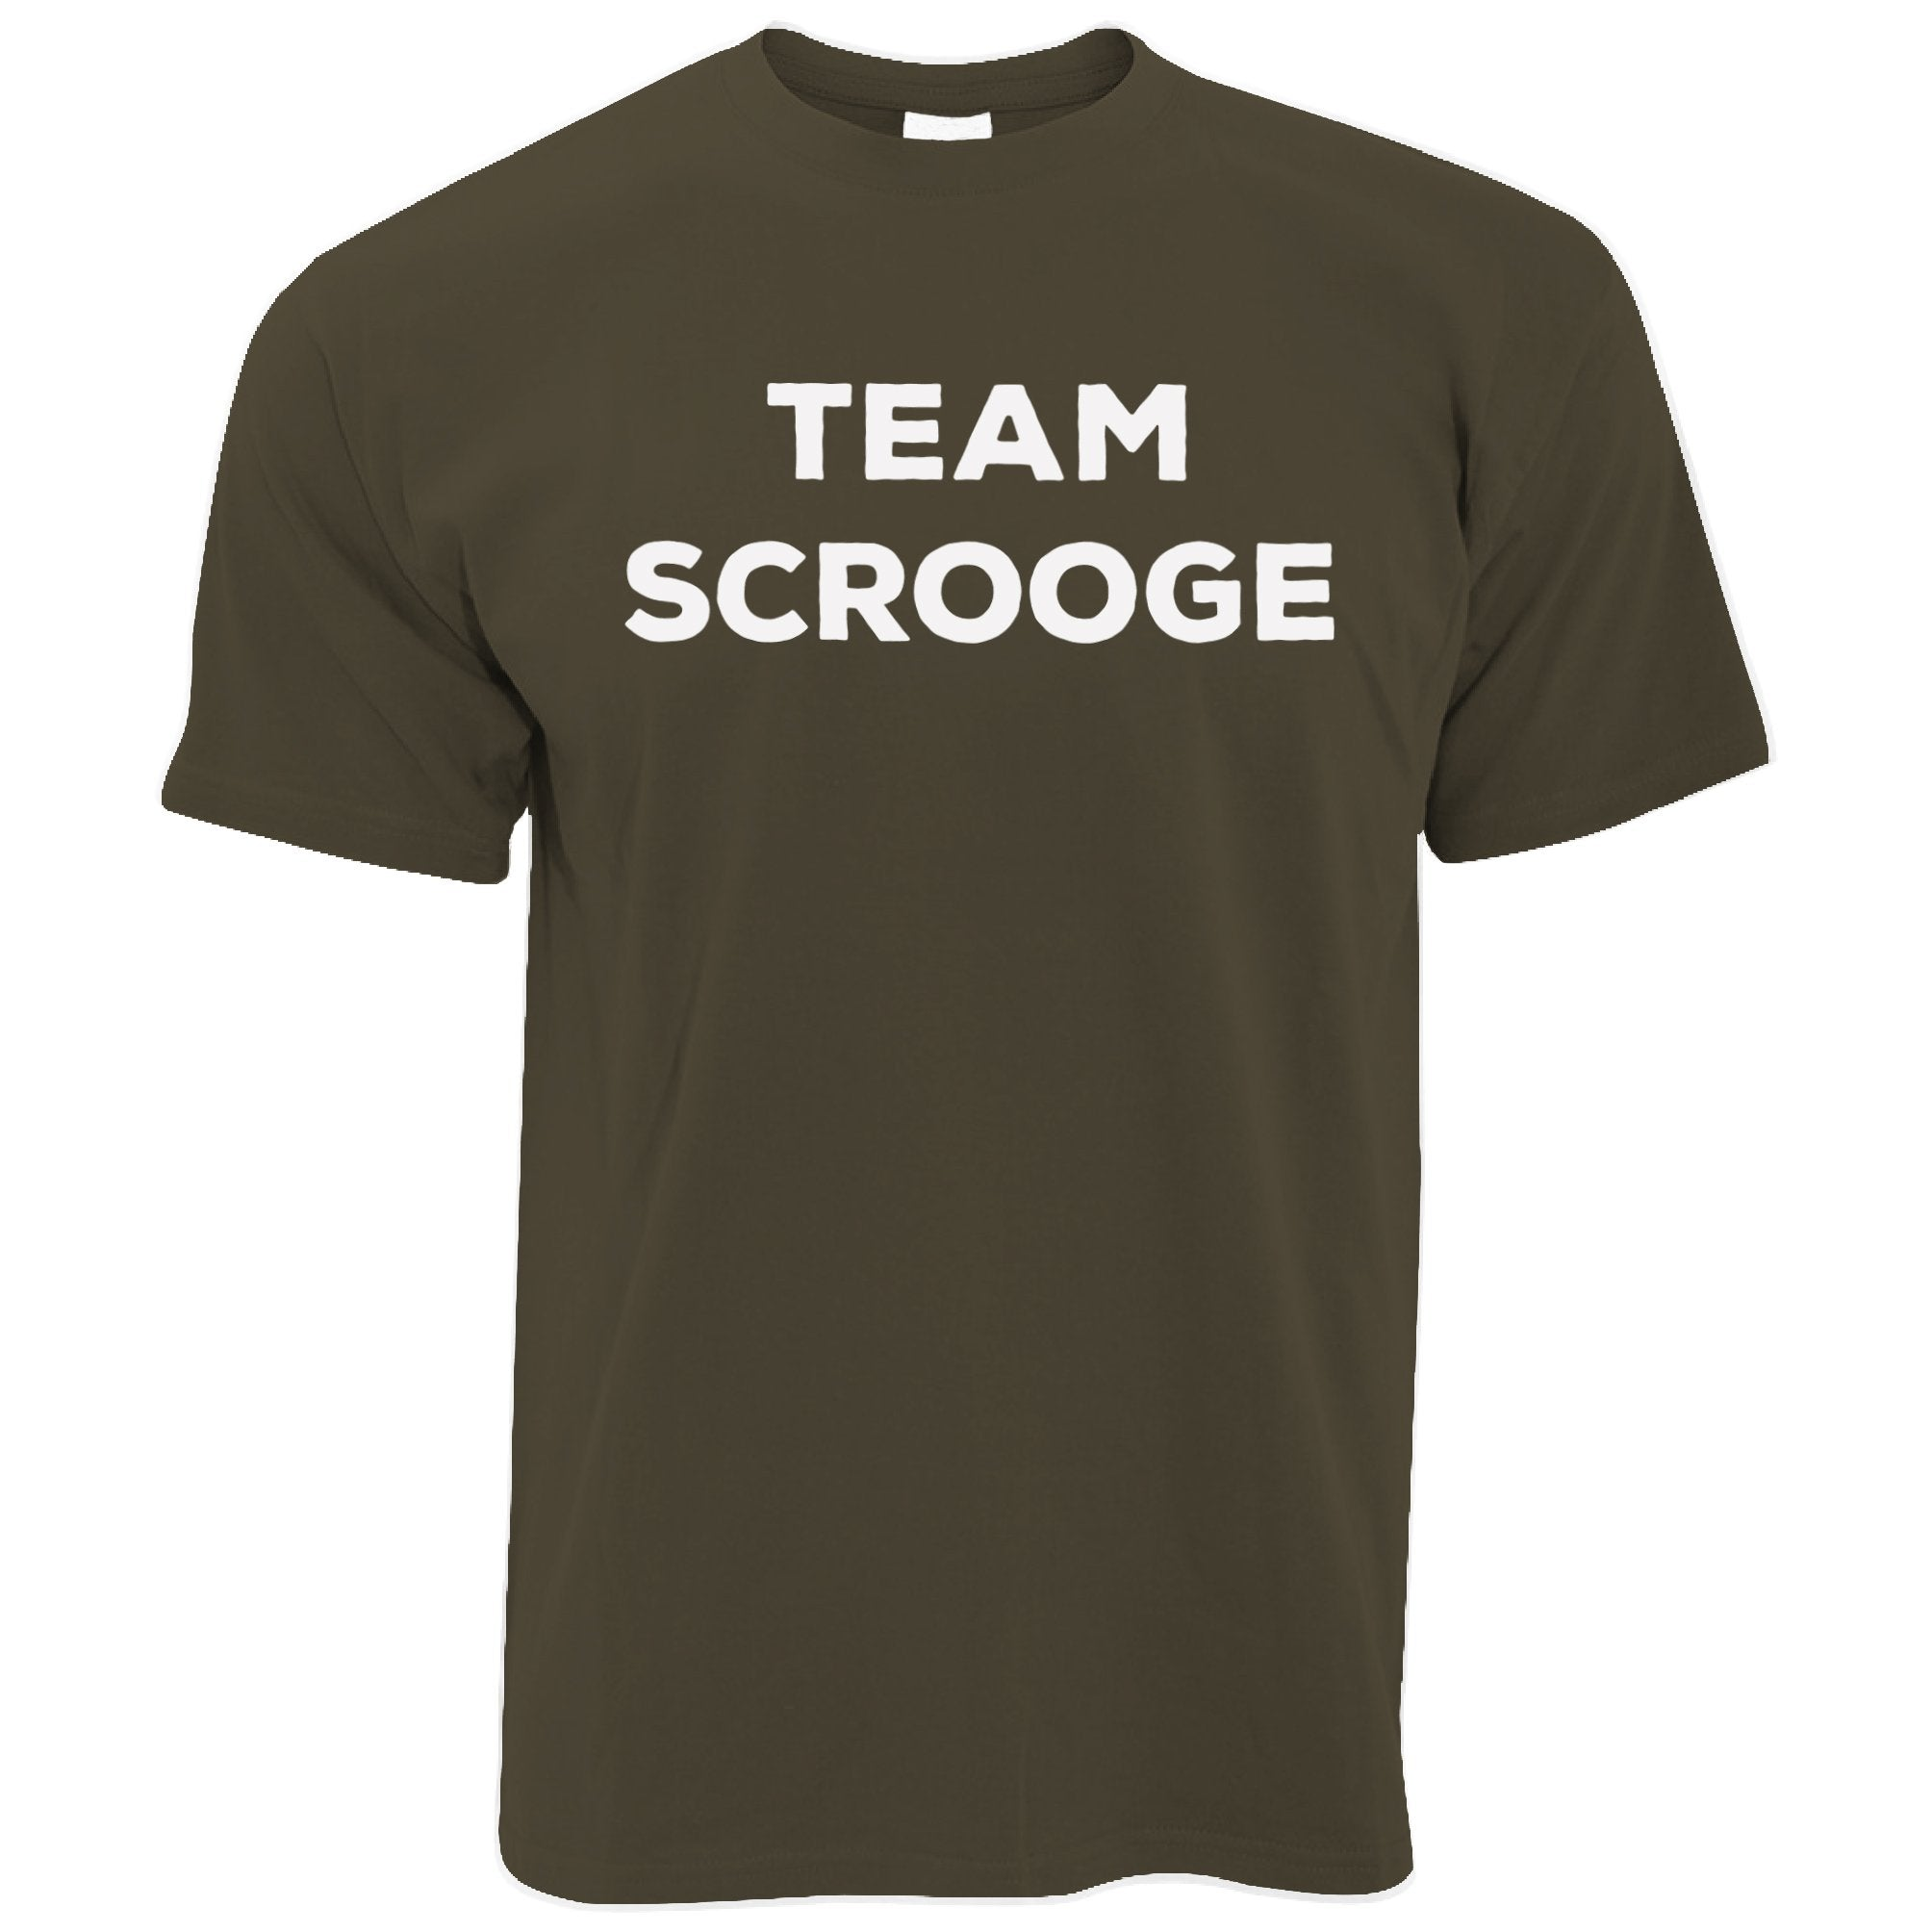 Novelty Anti-Christmas T Shirt Team Scrooge Slogan